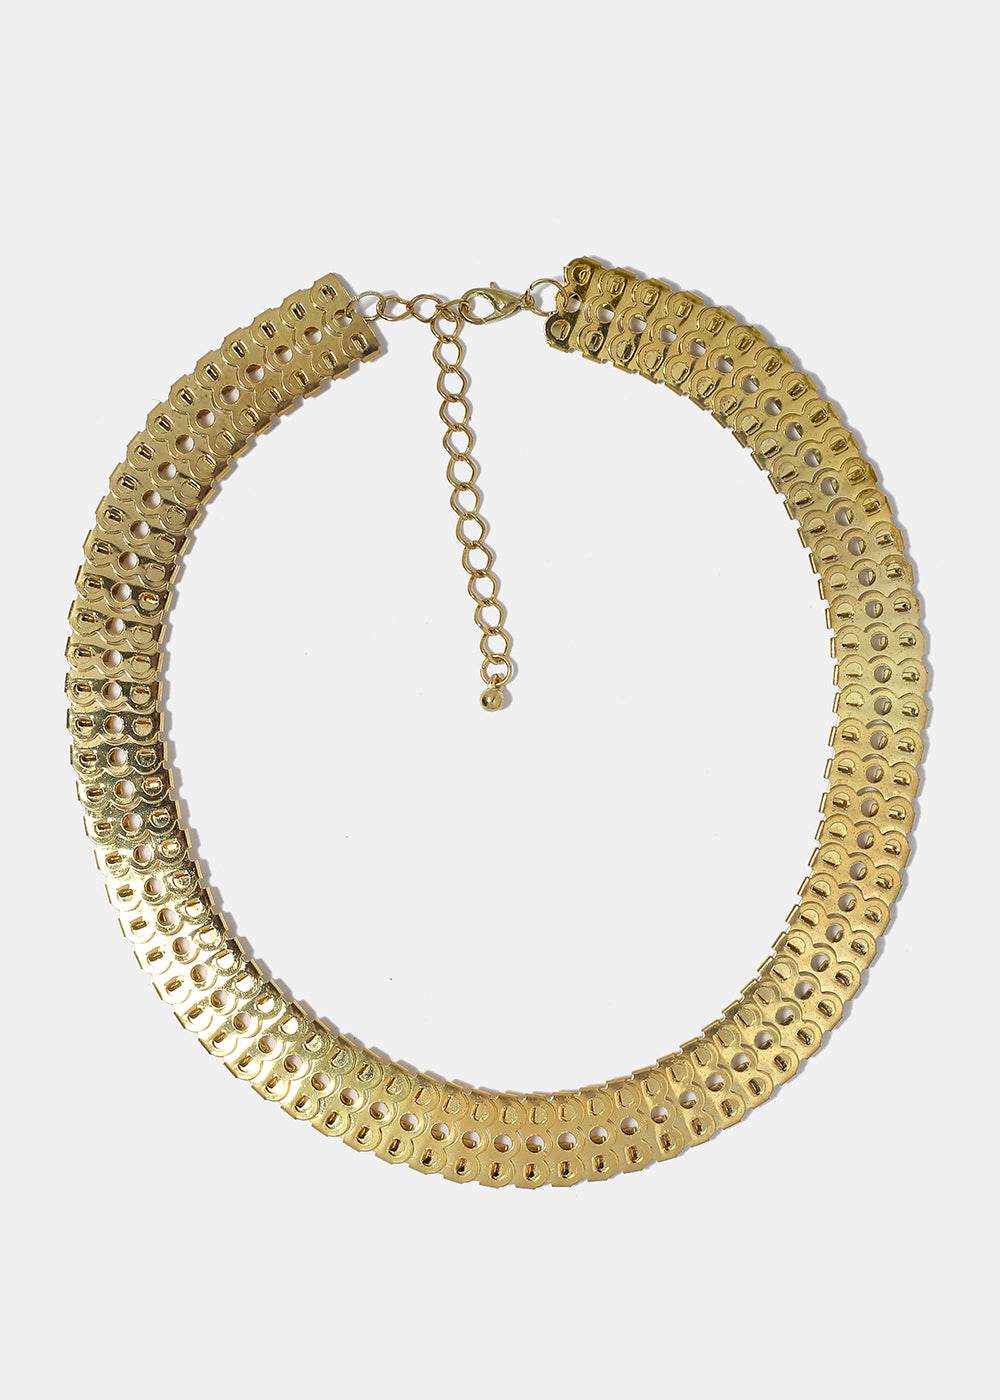 id bar products new collections chain stewart loren necklace arrivals